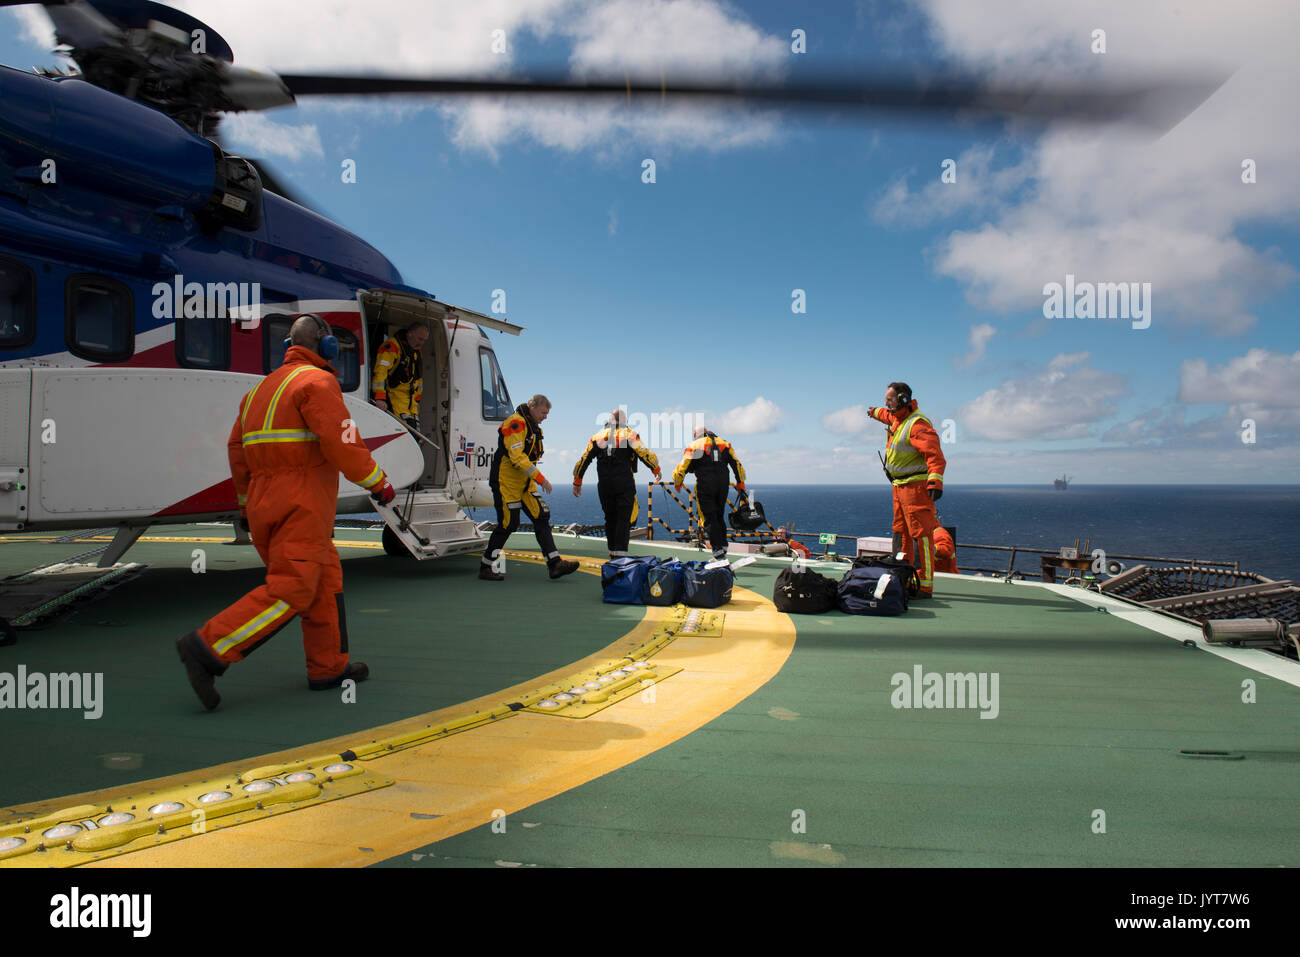 Bristow Helicopter, landing on a north sea oil and gas platform,  while passengers disembark. credit: LEE RAMSDEN Stock Photo